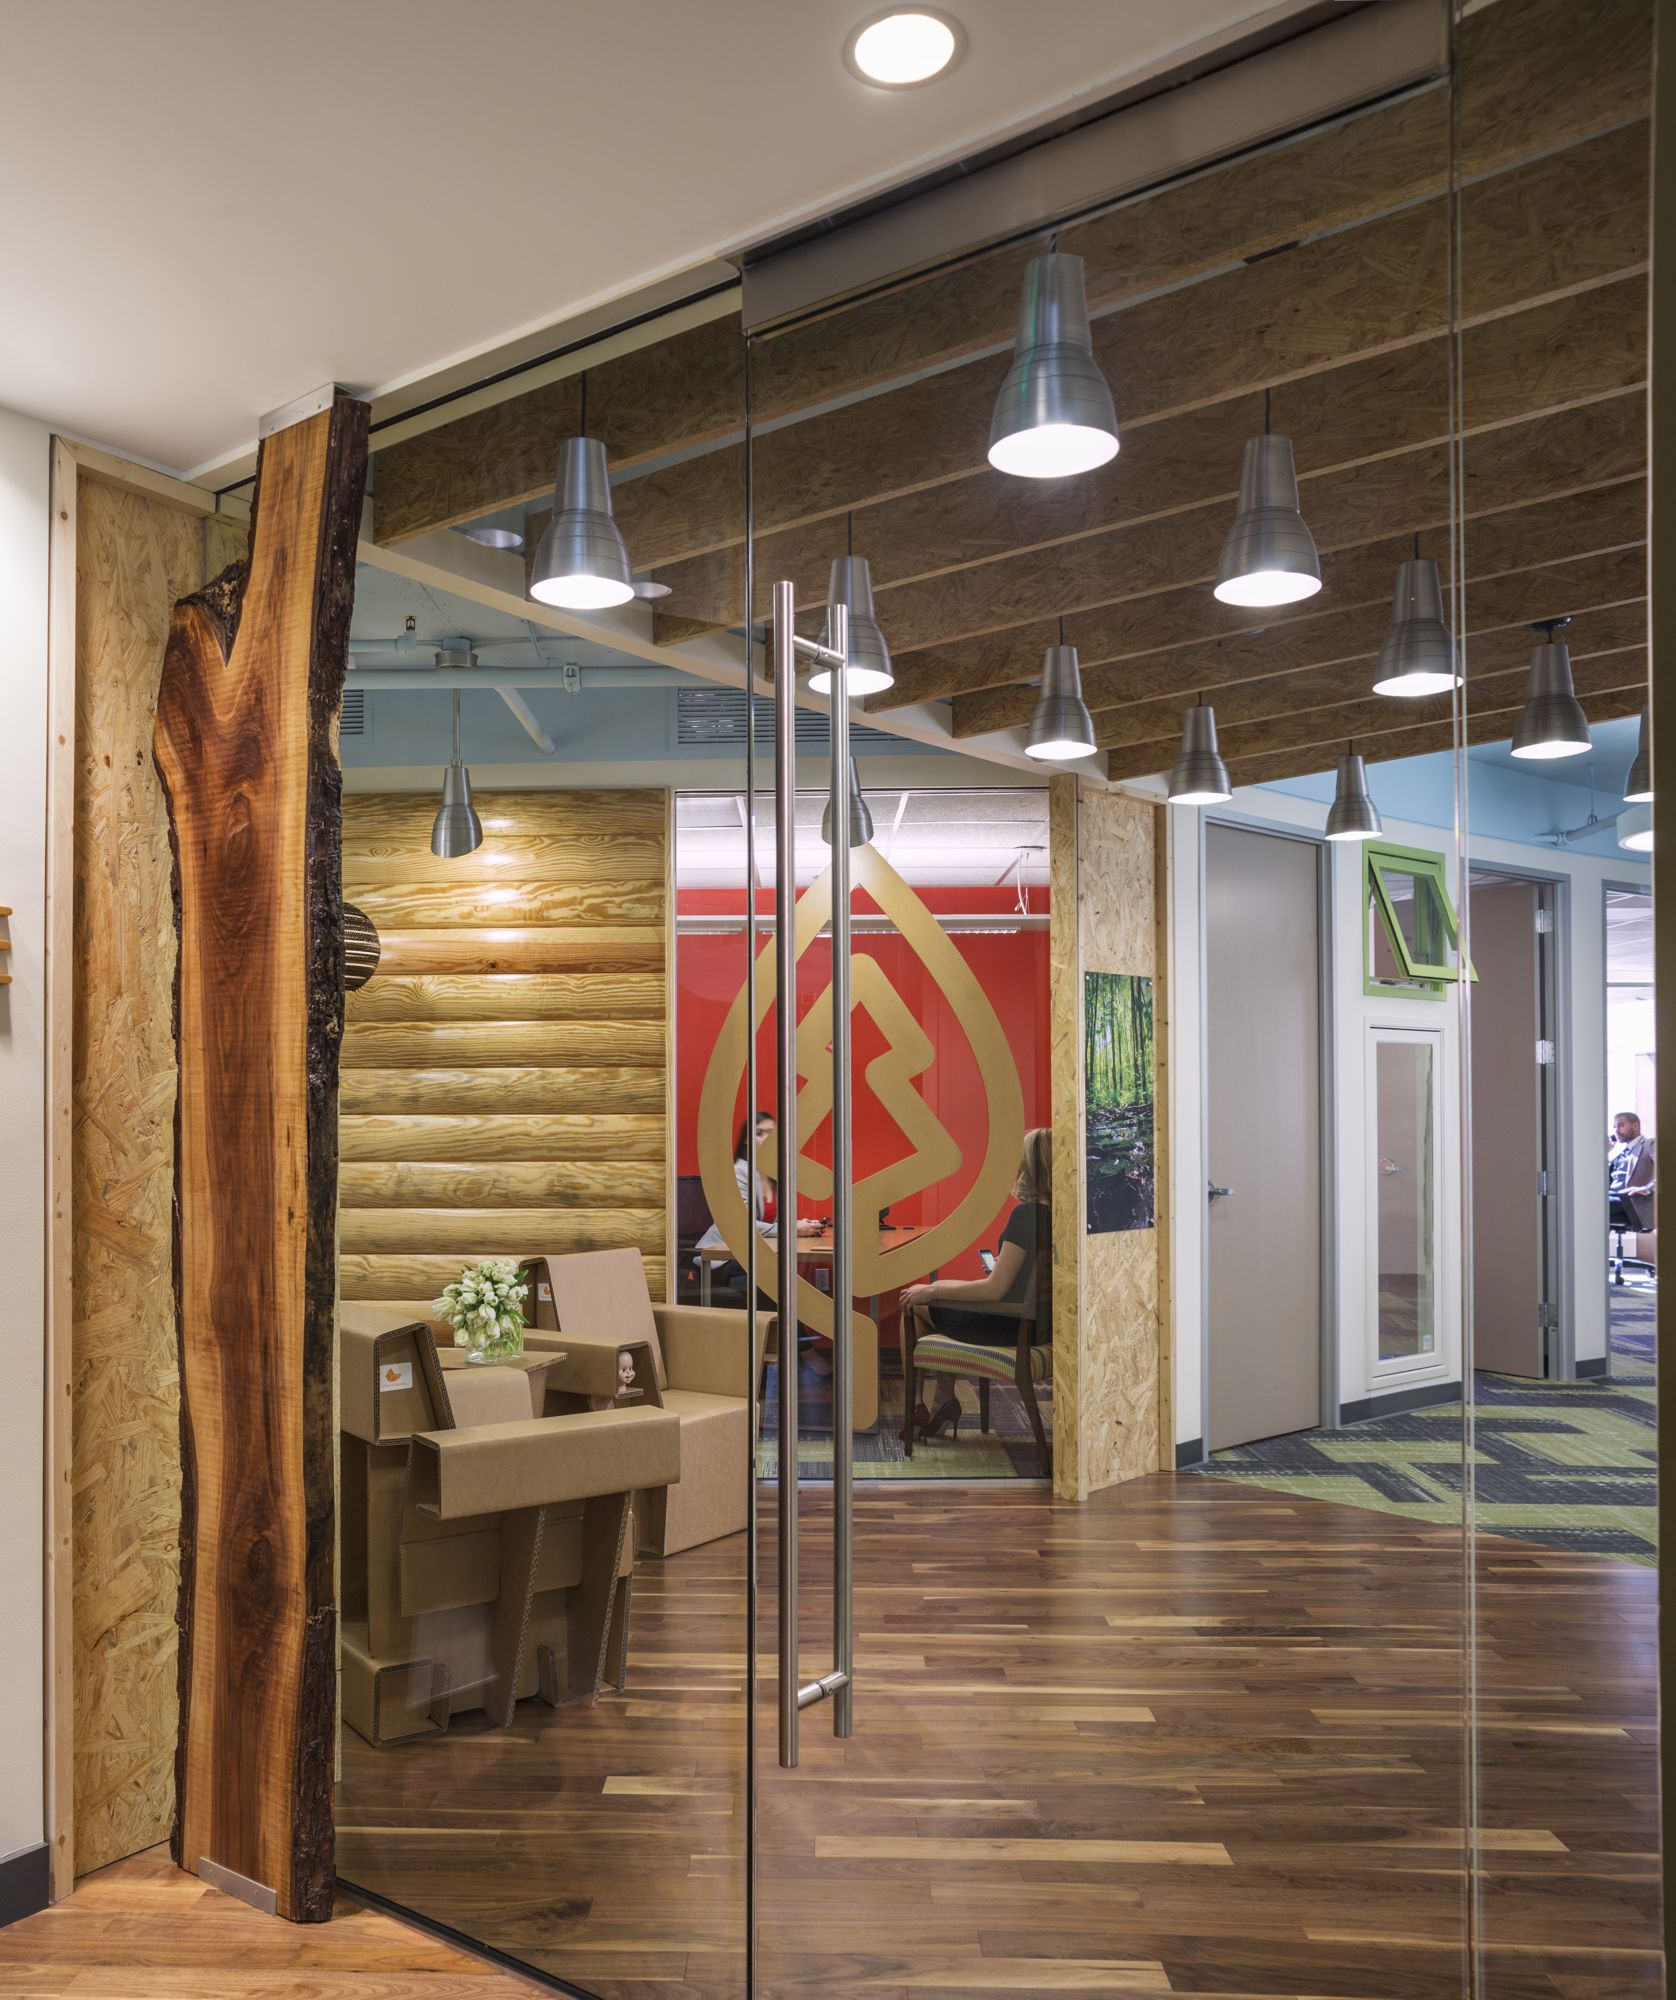 The live-edge wood framed entry, custom-designed MDF logo and custom SFI-sourced cardboard chairs and cardboard pendant lighting, invite visitors into a reception that emphasizes the beauty and diversity of sustainable wood products.